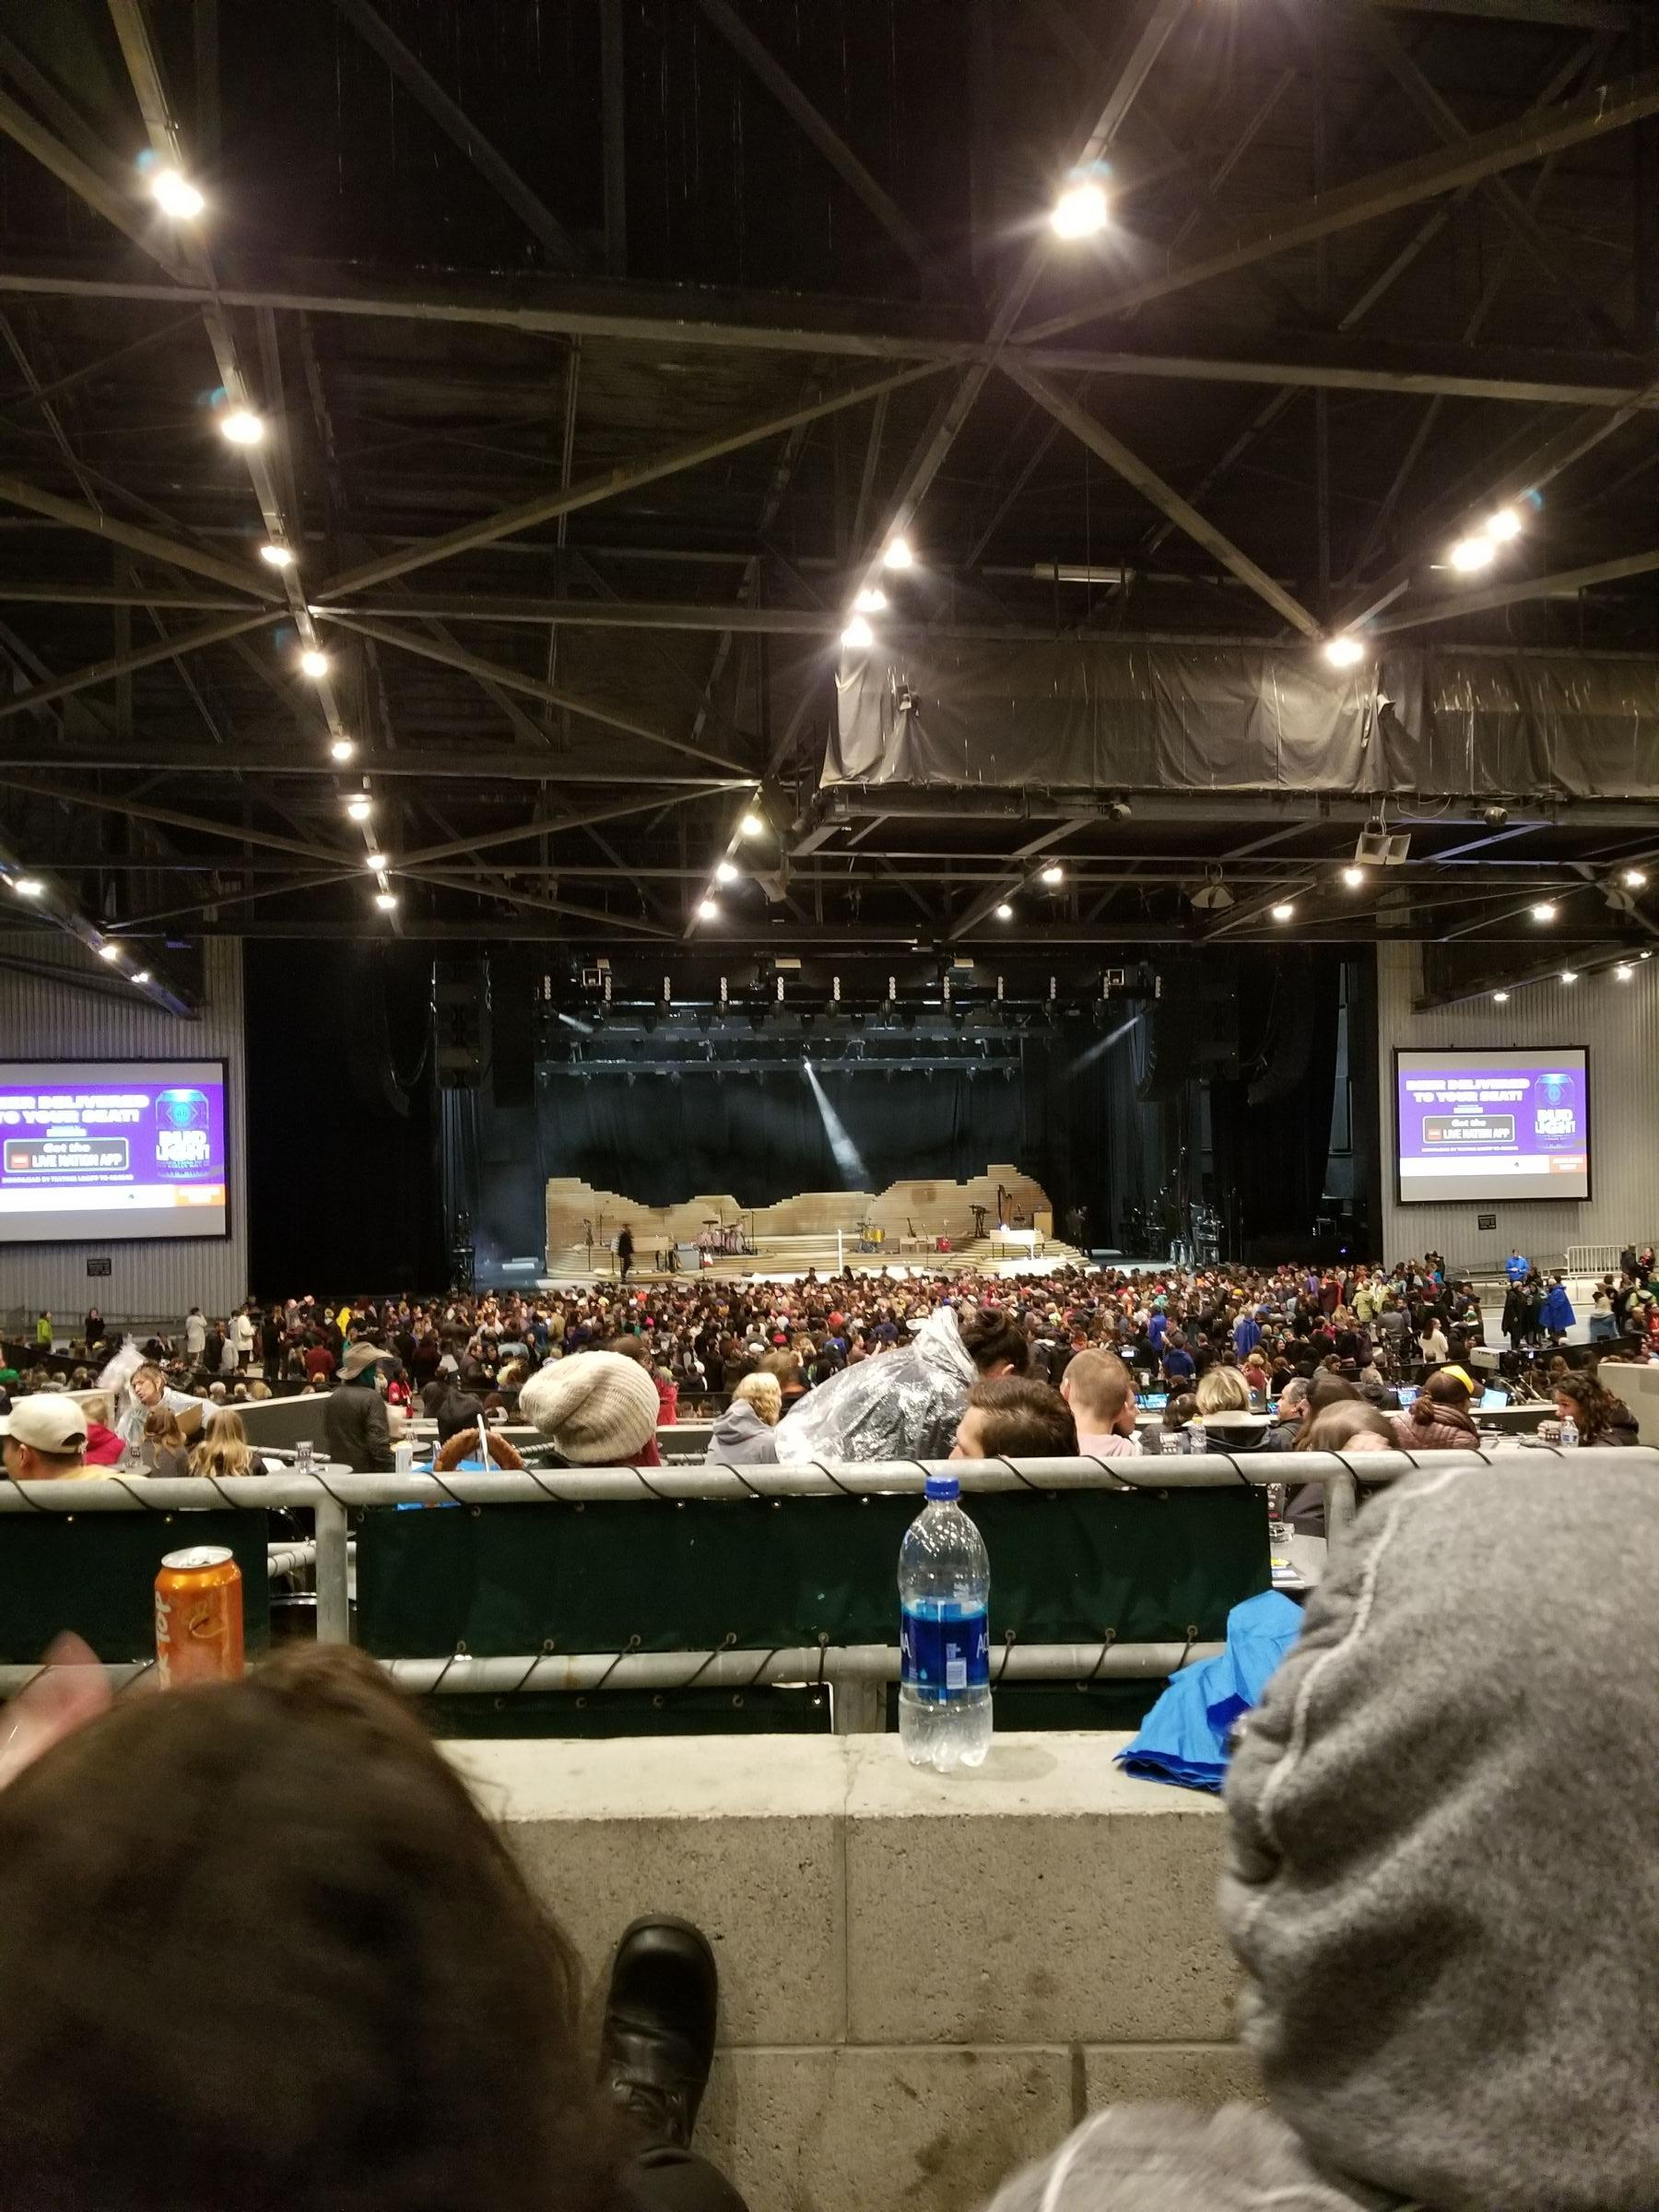 Concert Seat View for Concord Pavilion Section 206, Row BB, Seat 5